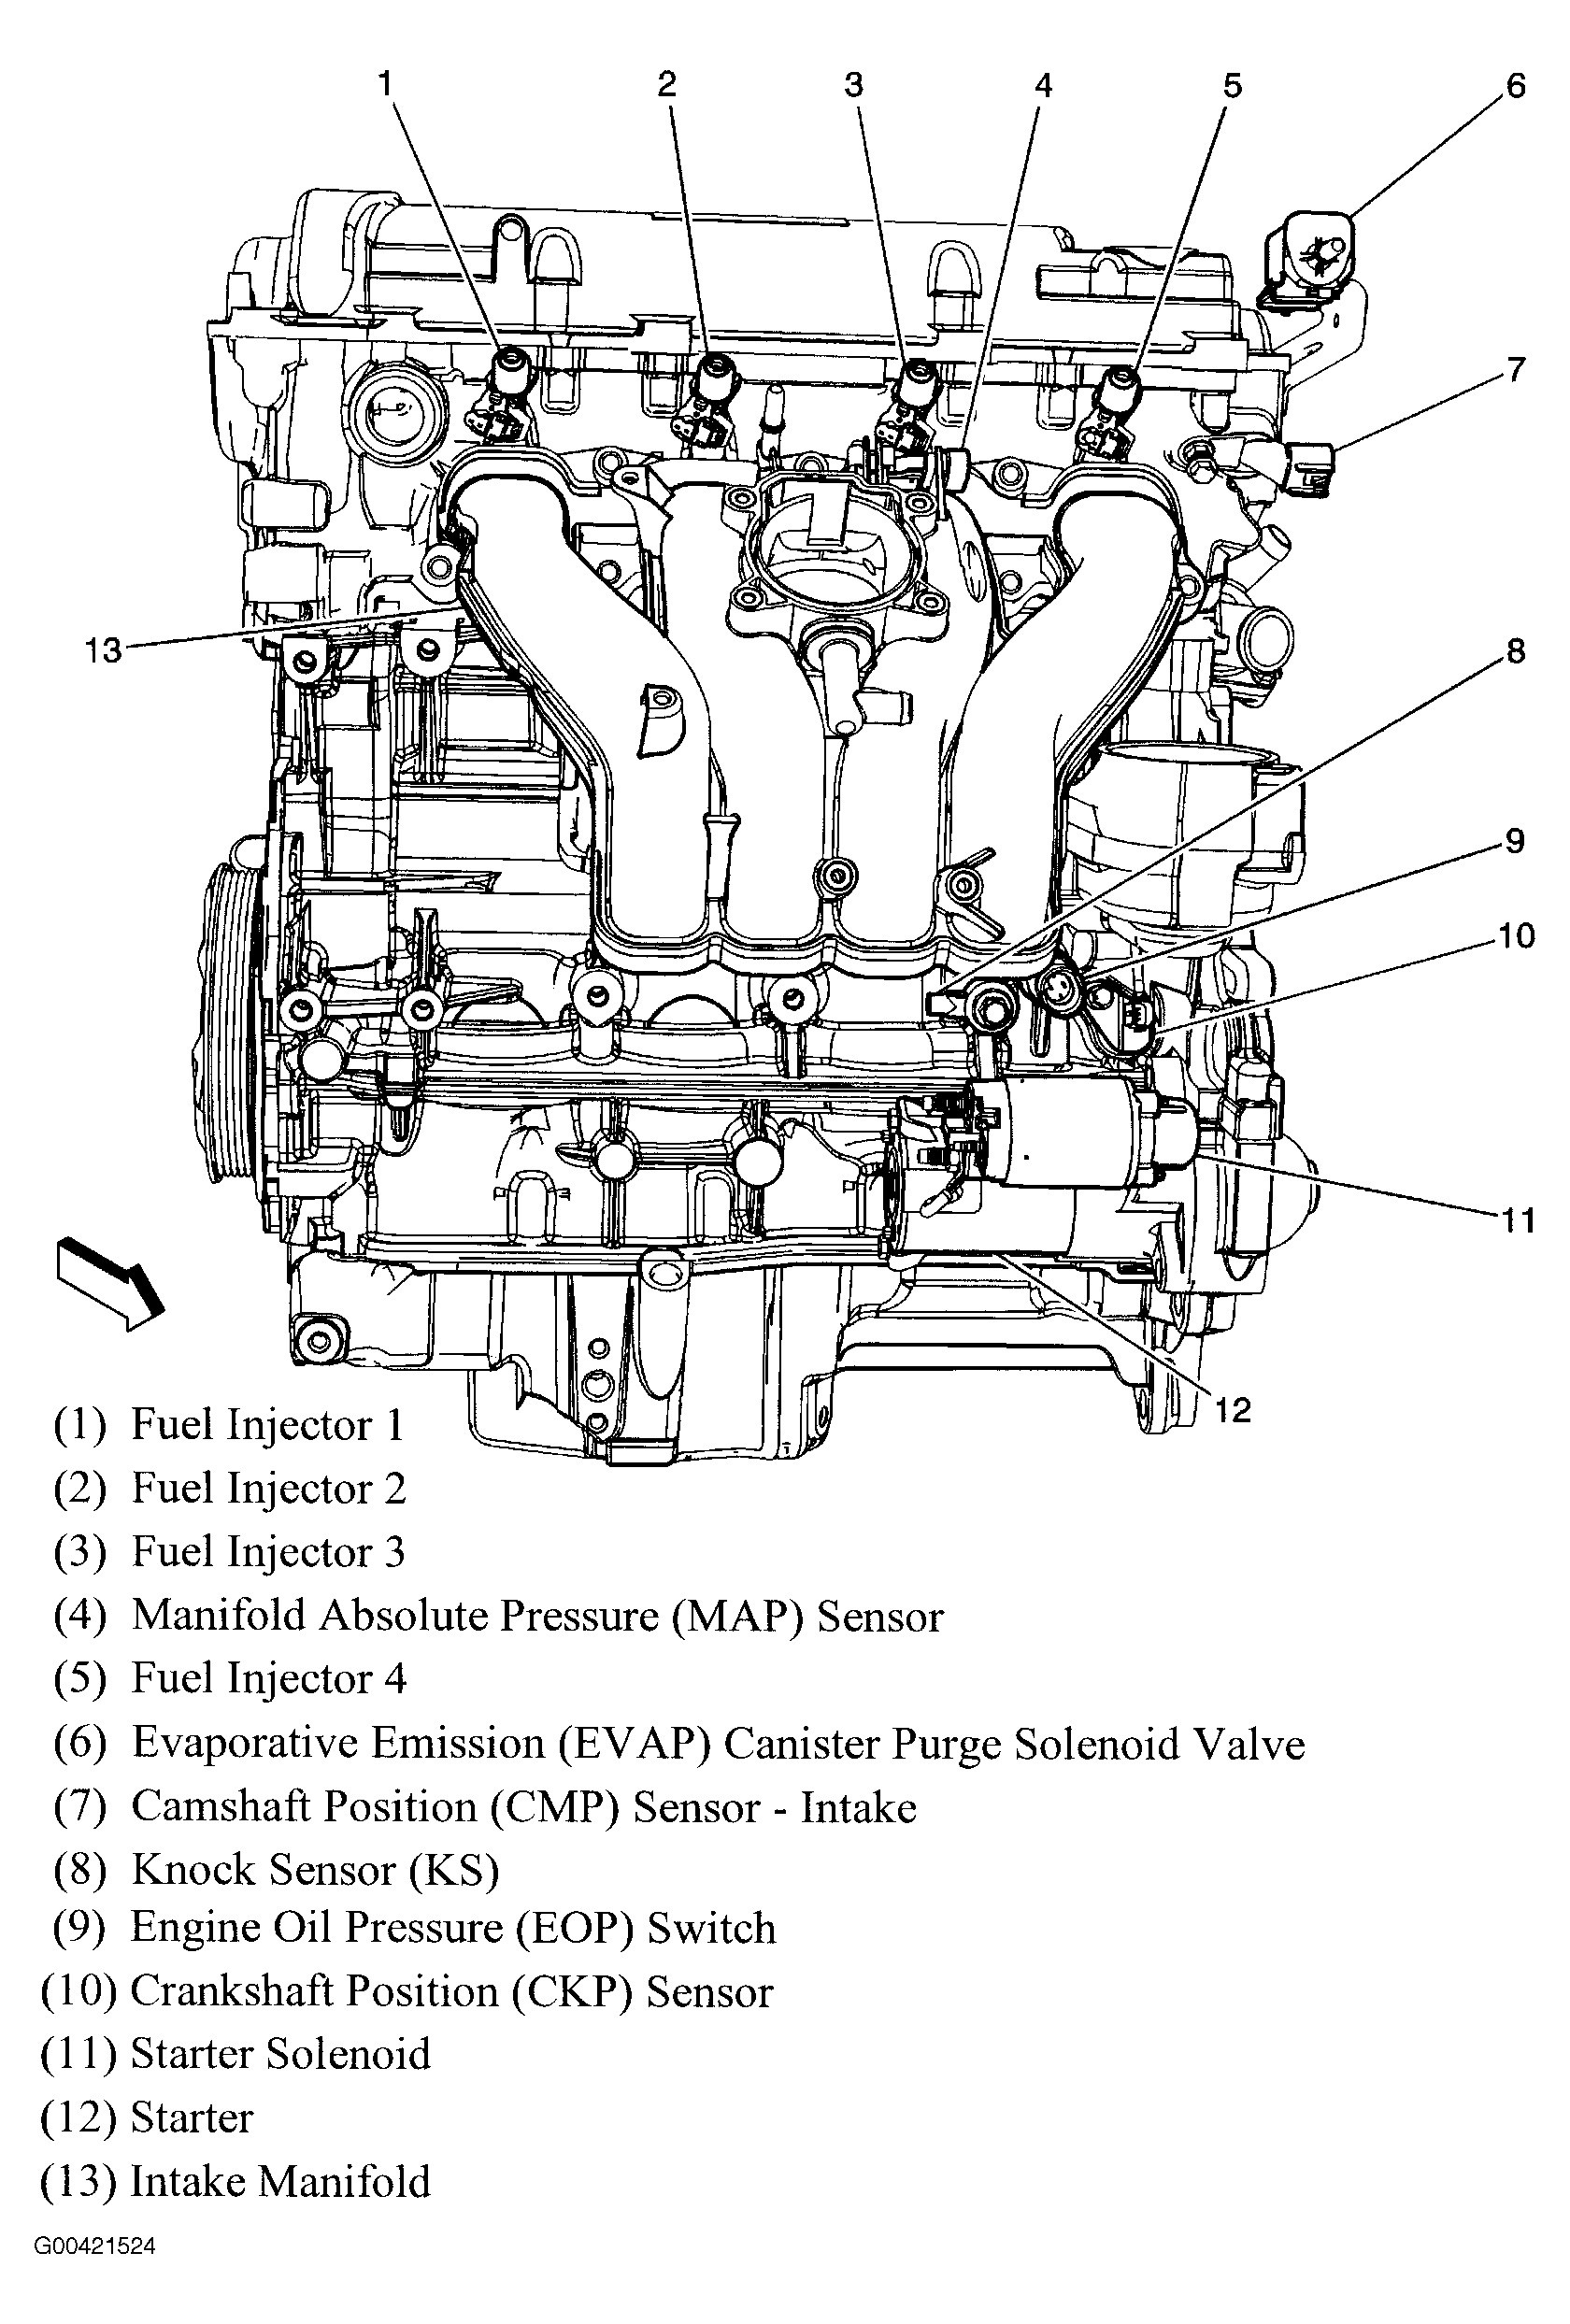 2008 chevy colorado engine diagram